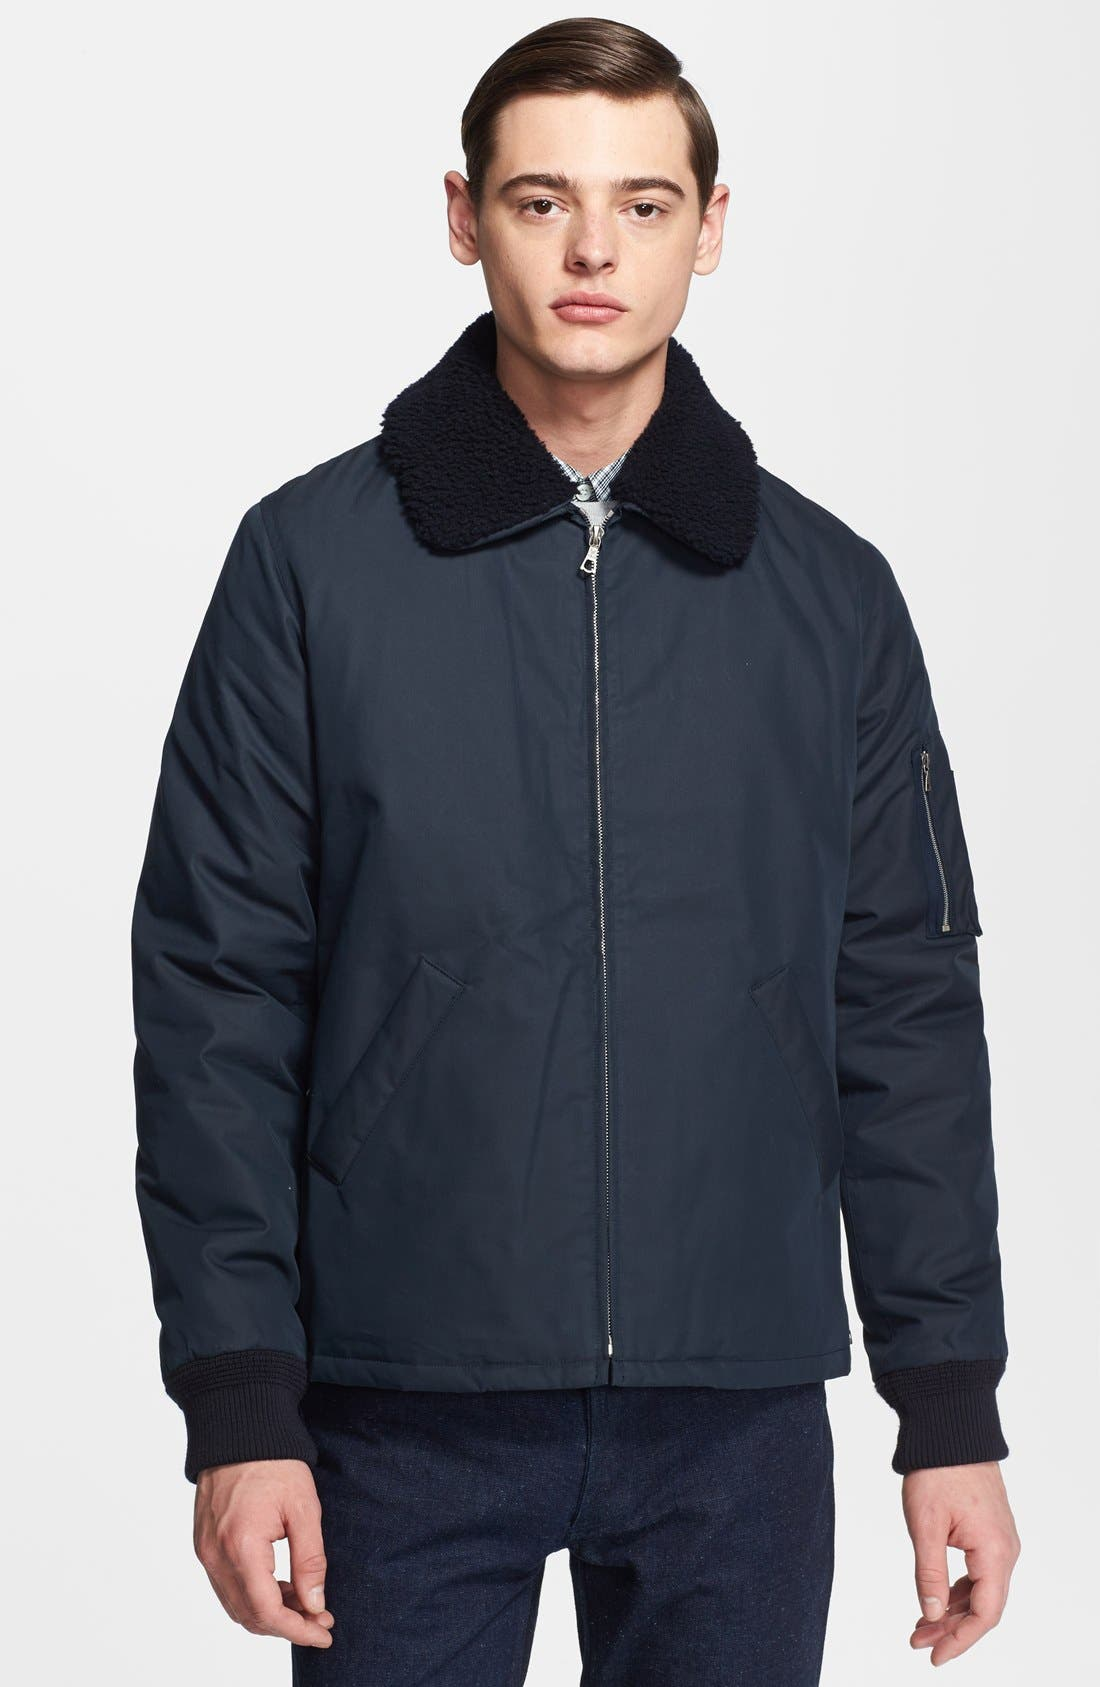 Alternate Image 1 Selected - A.P.C. 'Hunter' Jacket with Removable Shearling Collar